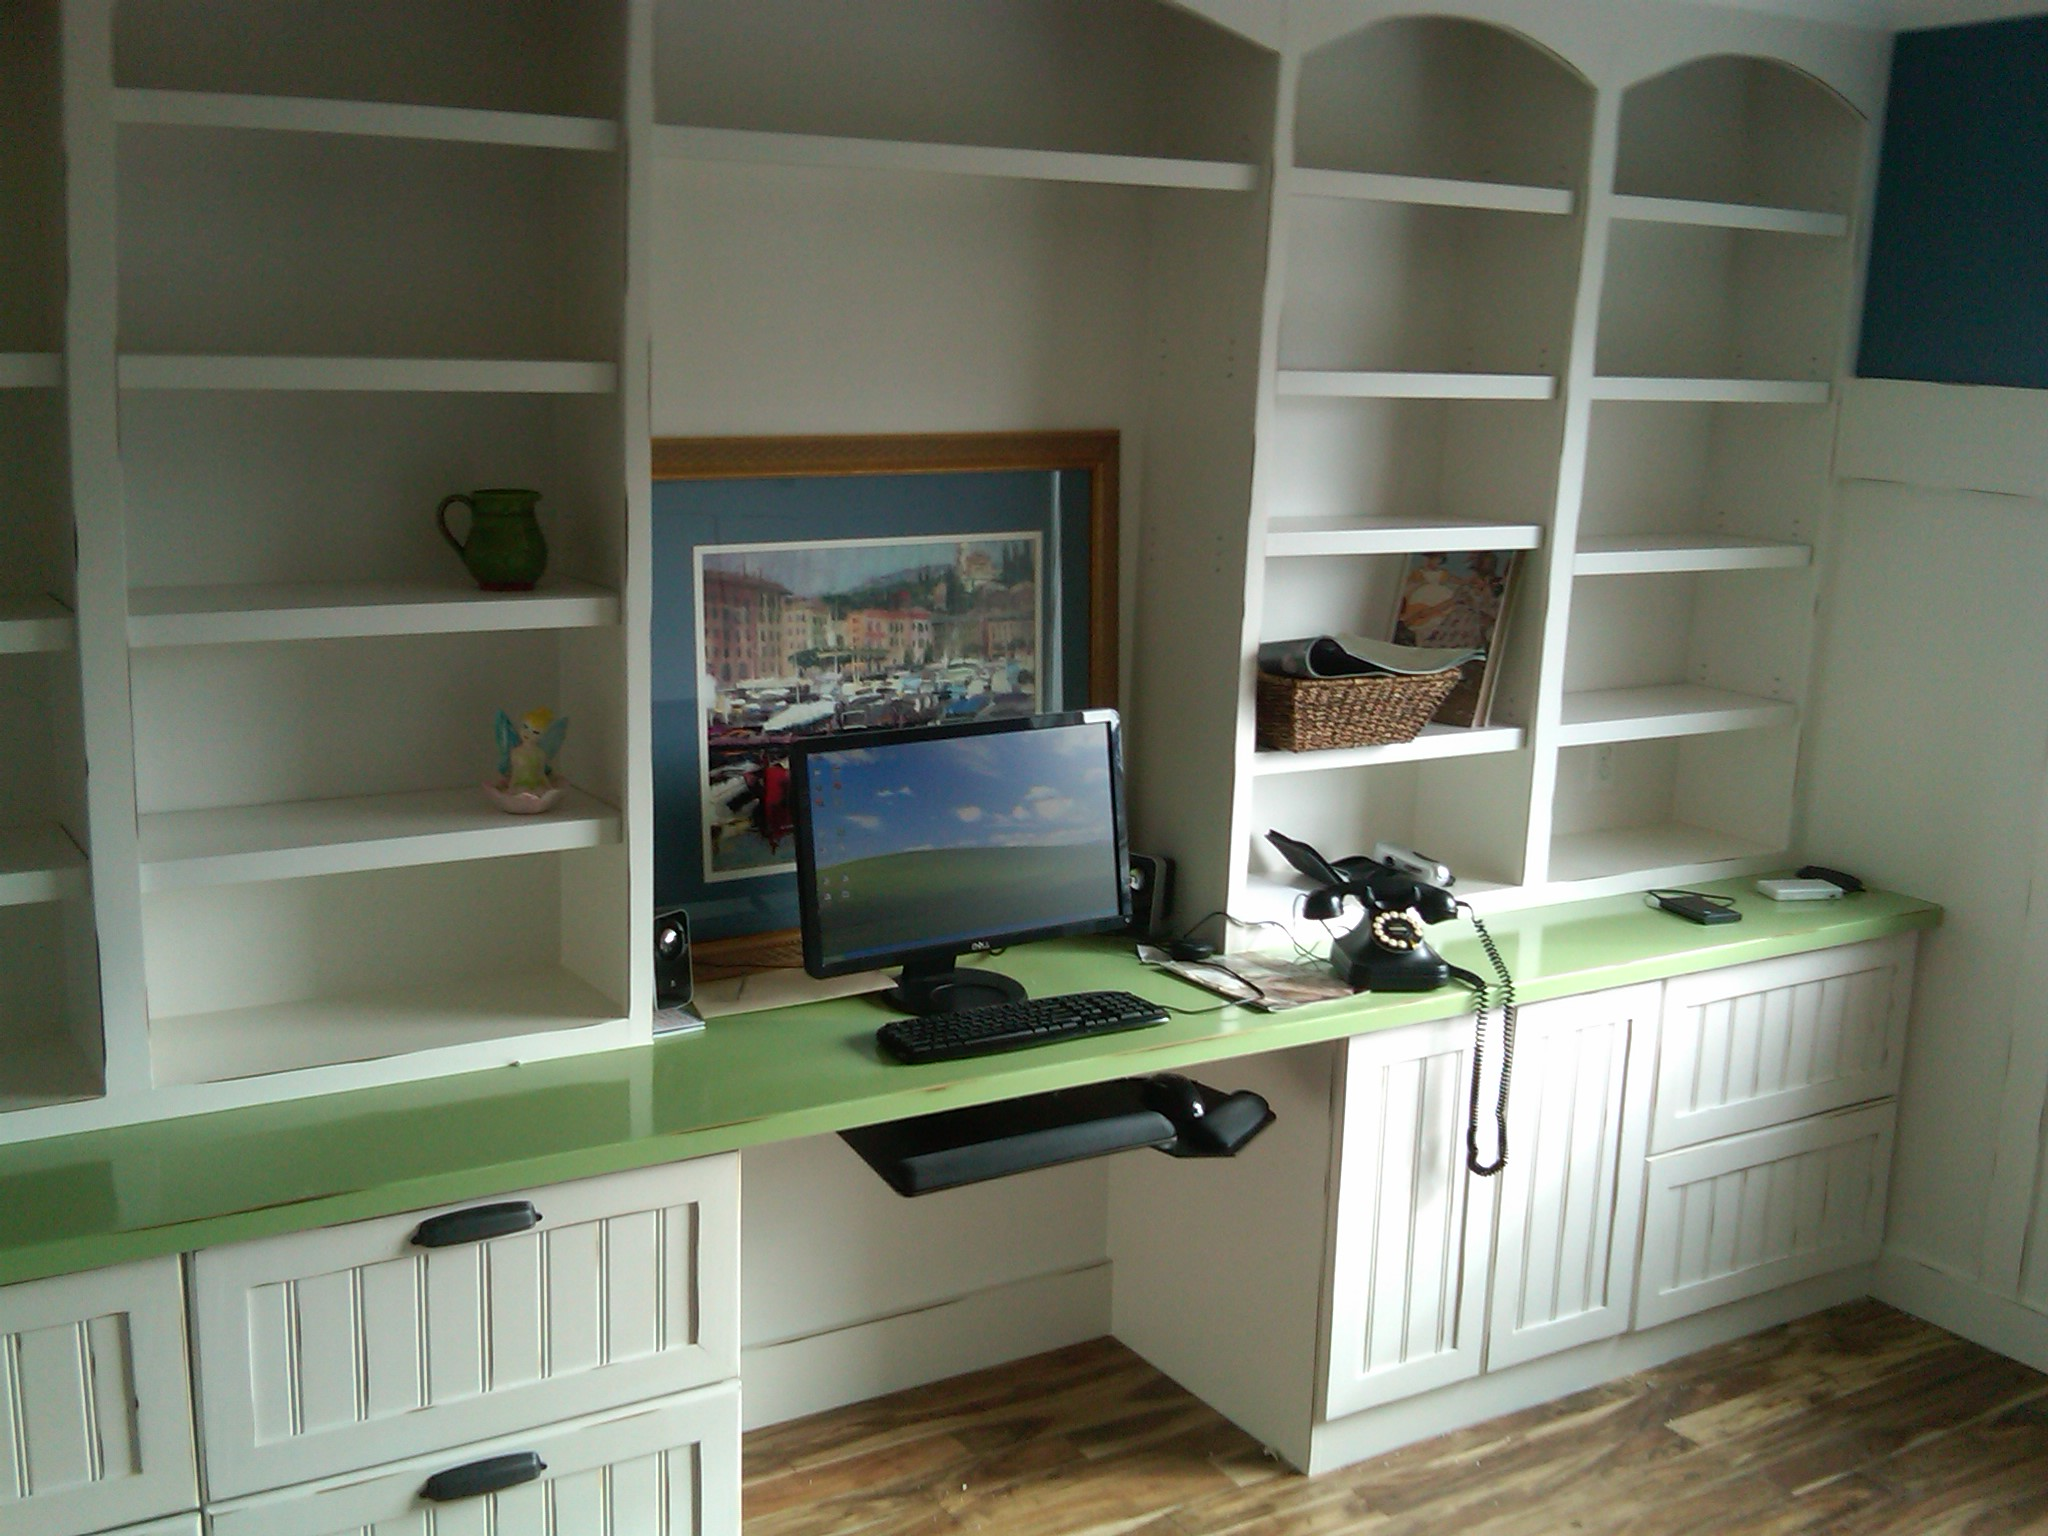 wooden show computer workspace also bookshelf interior impeccable desk inspiring collection from tremendous your feat cabinet gorgeous choose ikea nice design decorating fascinating home white